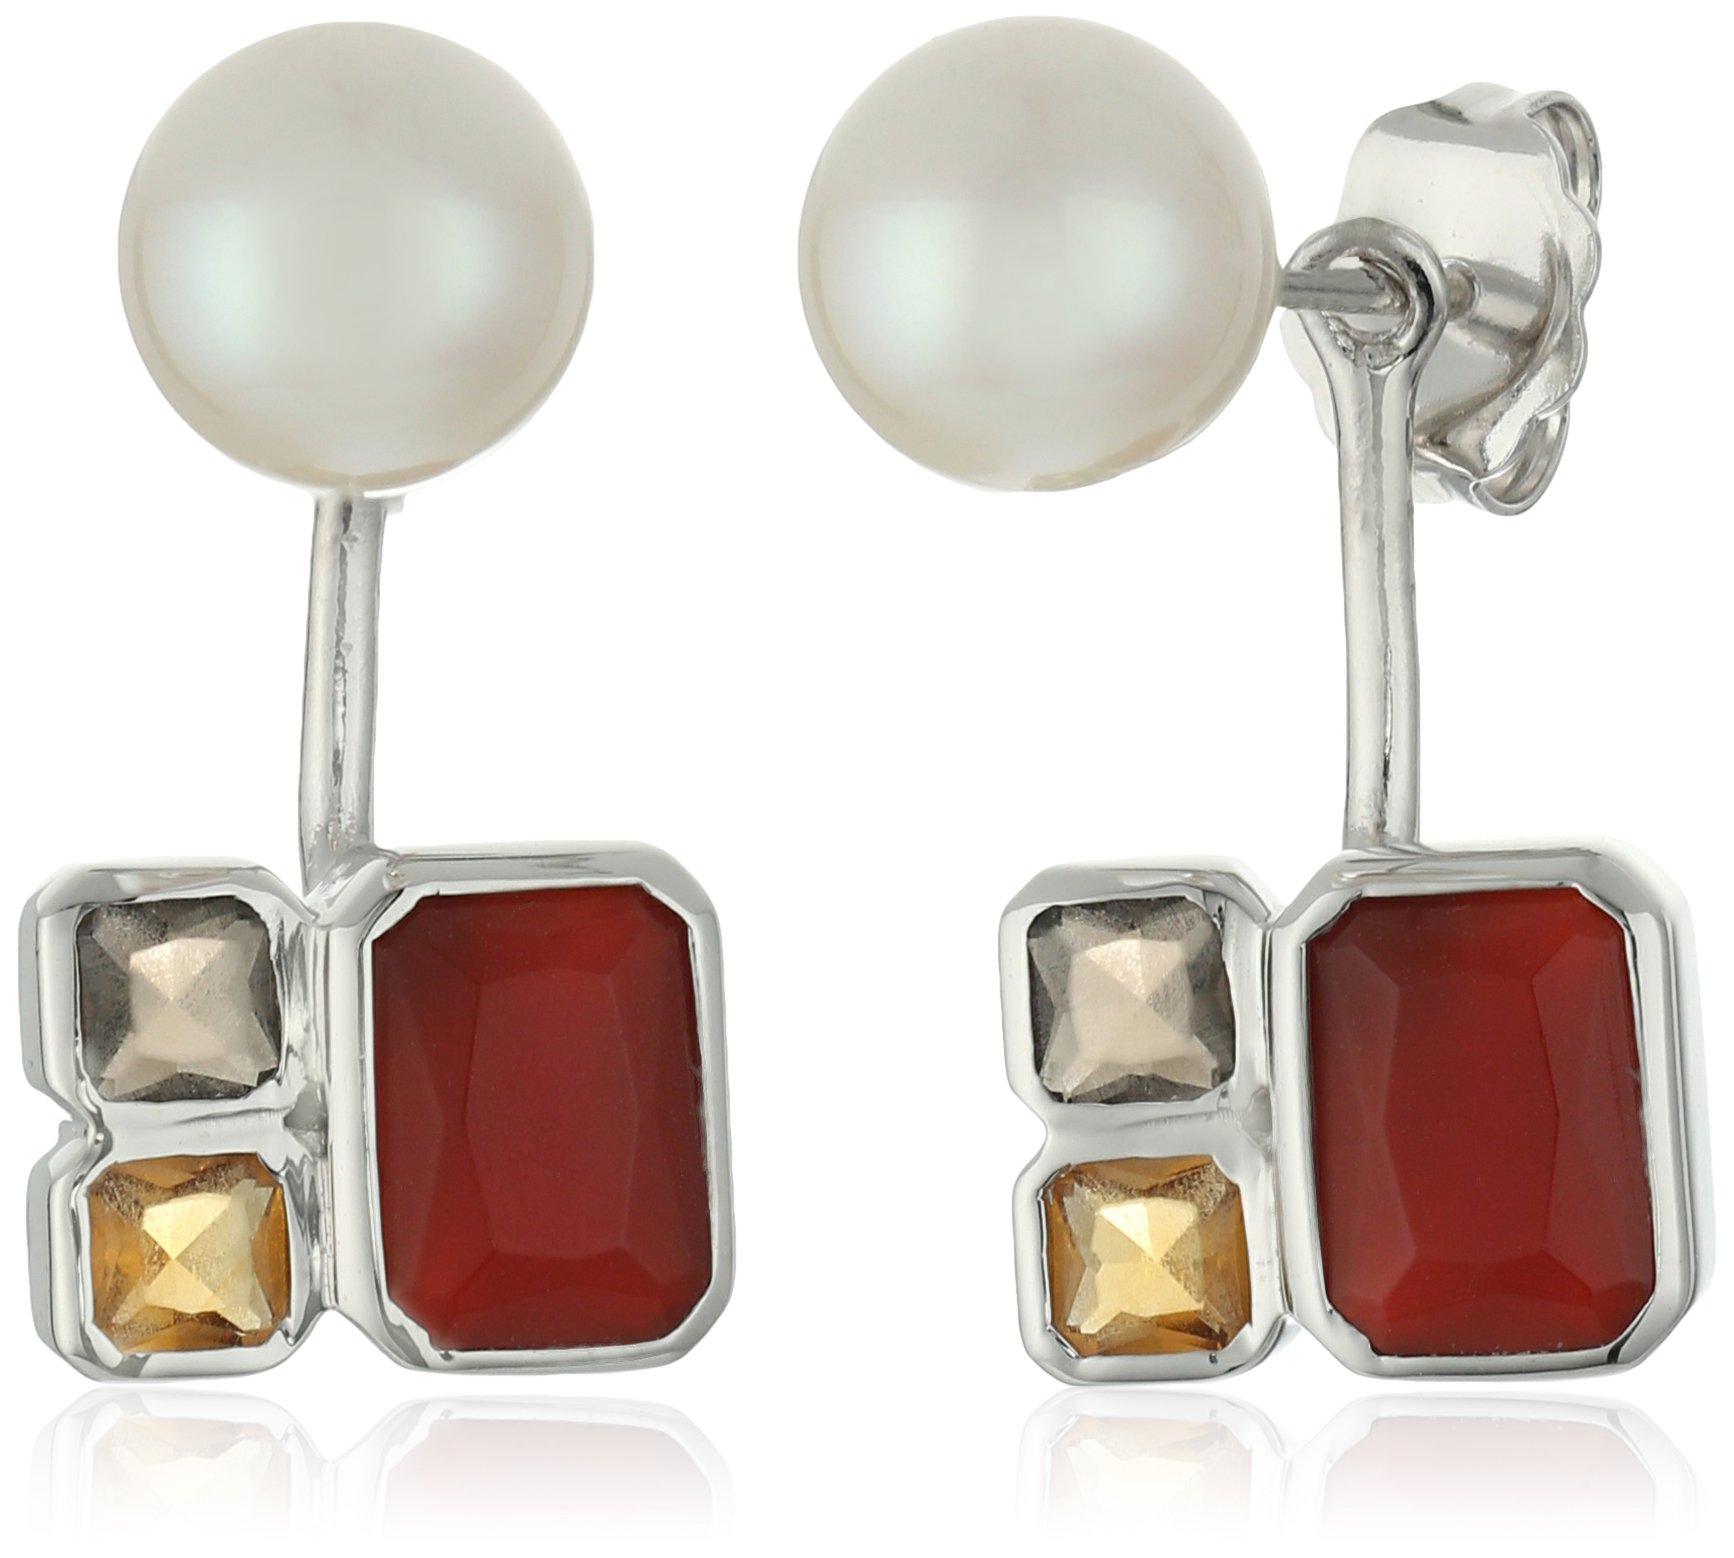 TARA Pearls 7X7.5mm Akoya Pearls, Smoky Quartz, Citrine and Red Agate Jacket Sterling Silver Earring Jackets